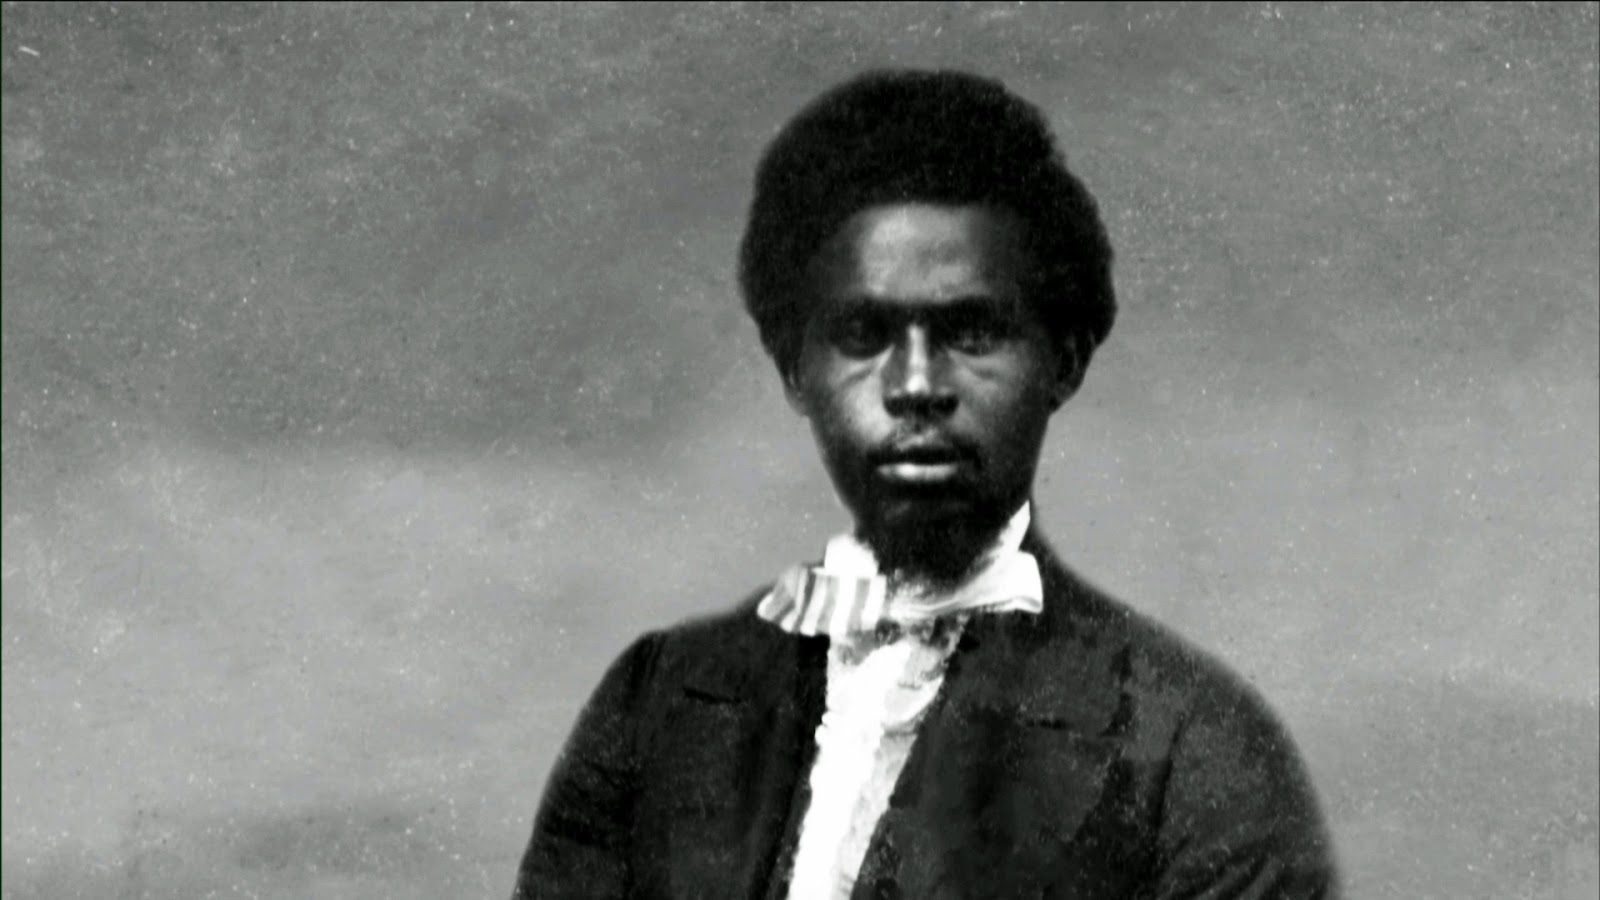 A young Robert Smalls